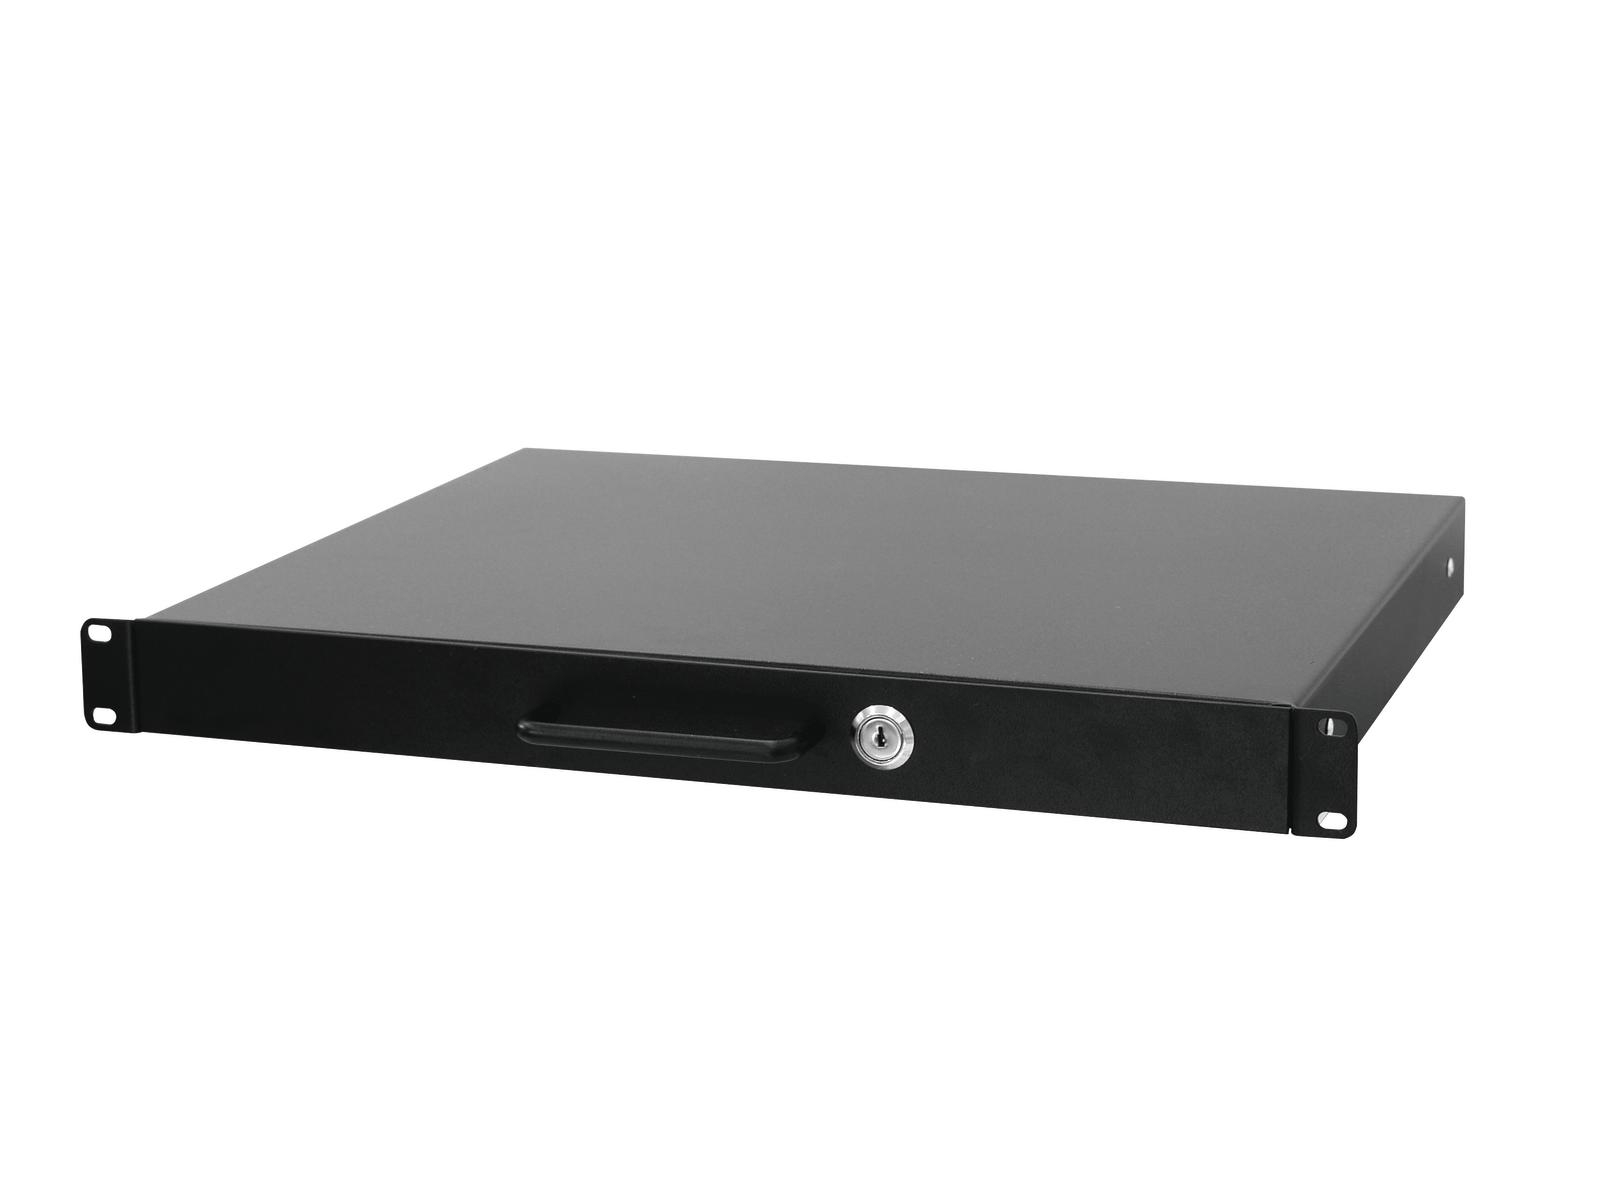 OMNITRONIC cassetto Rack con serratura 1U : 415 x 350 x 30 mm